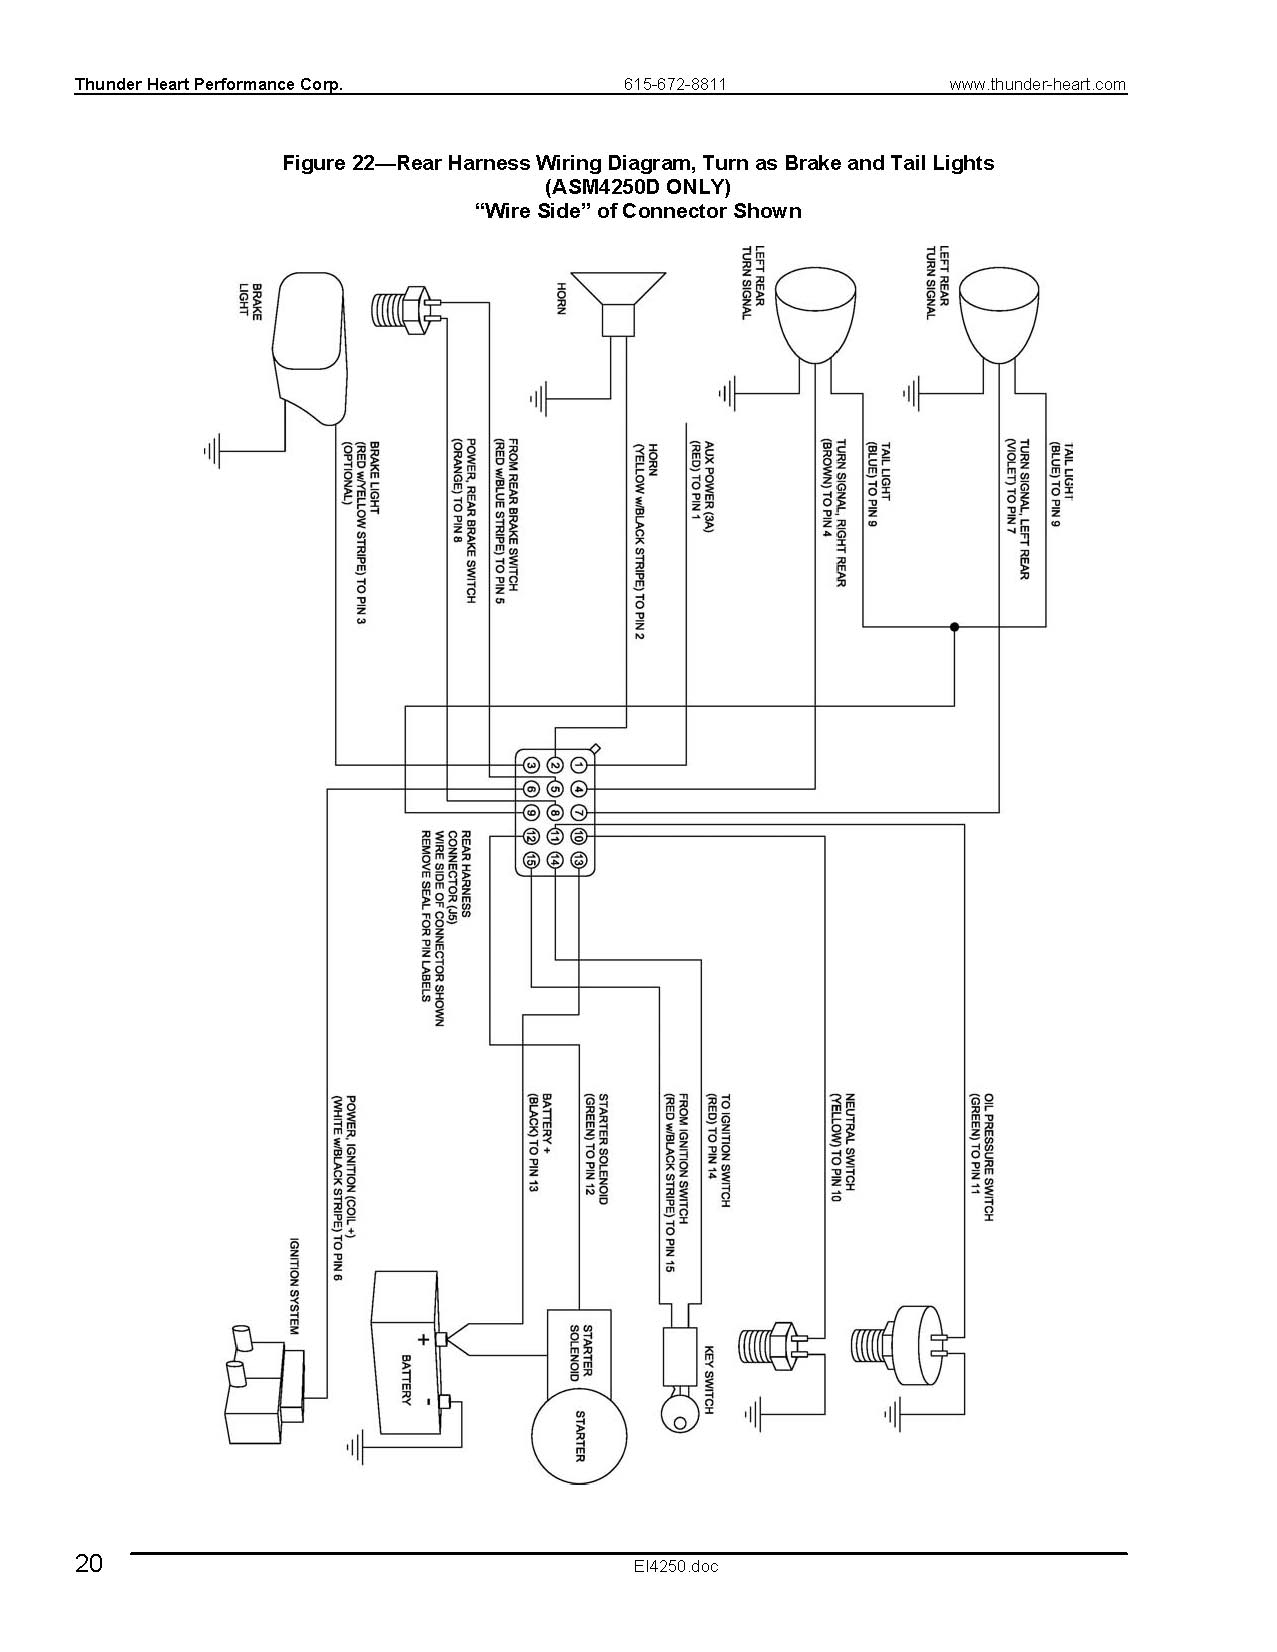 BE_3264] Wiring Diagram For 1997 Softail Free Diagram